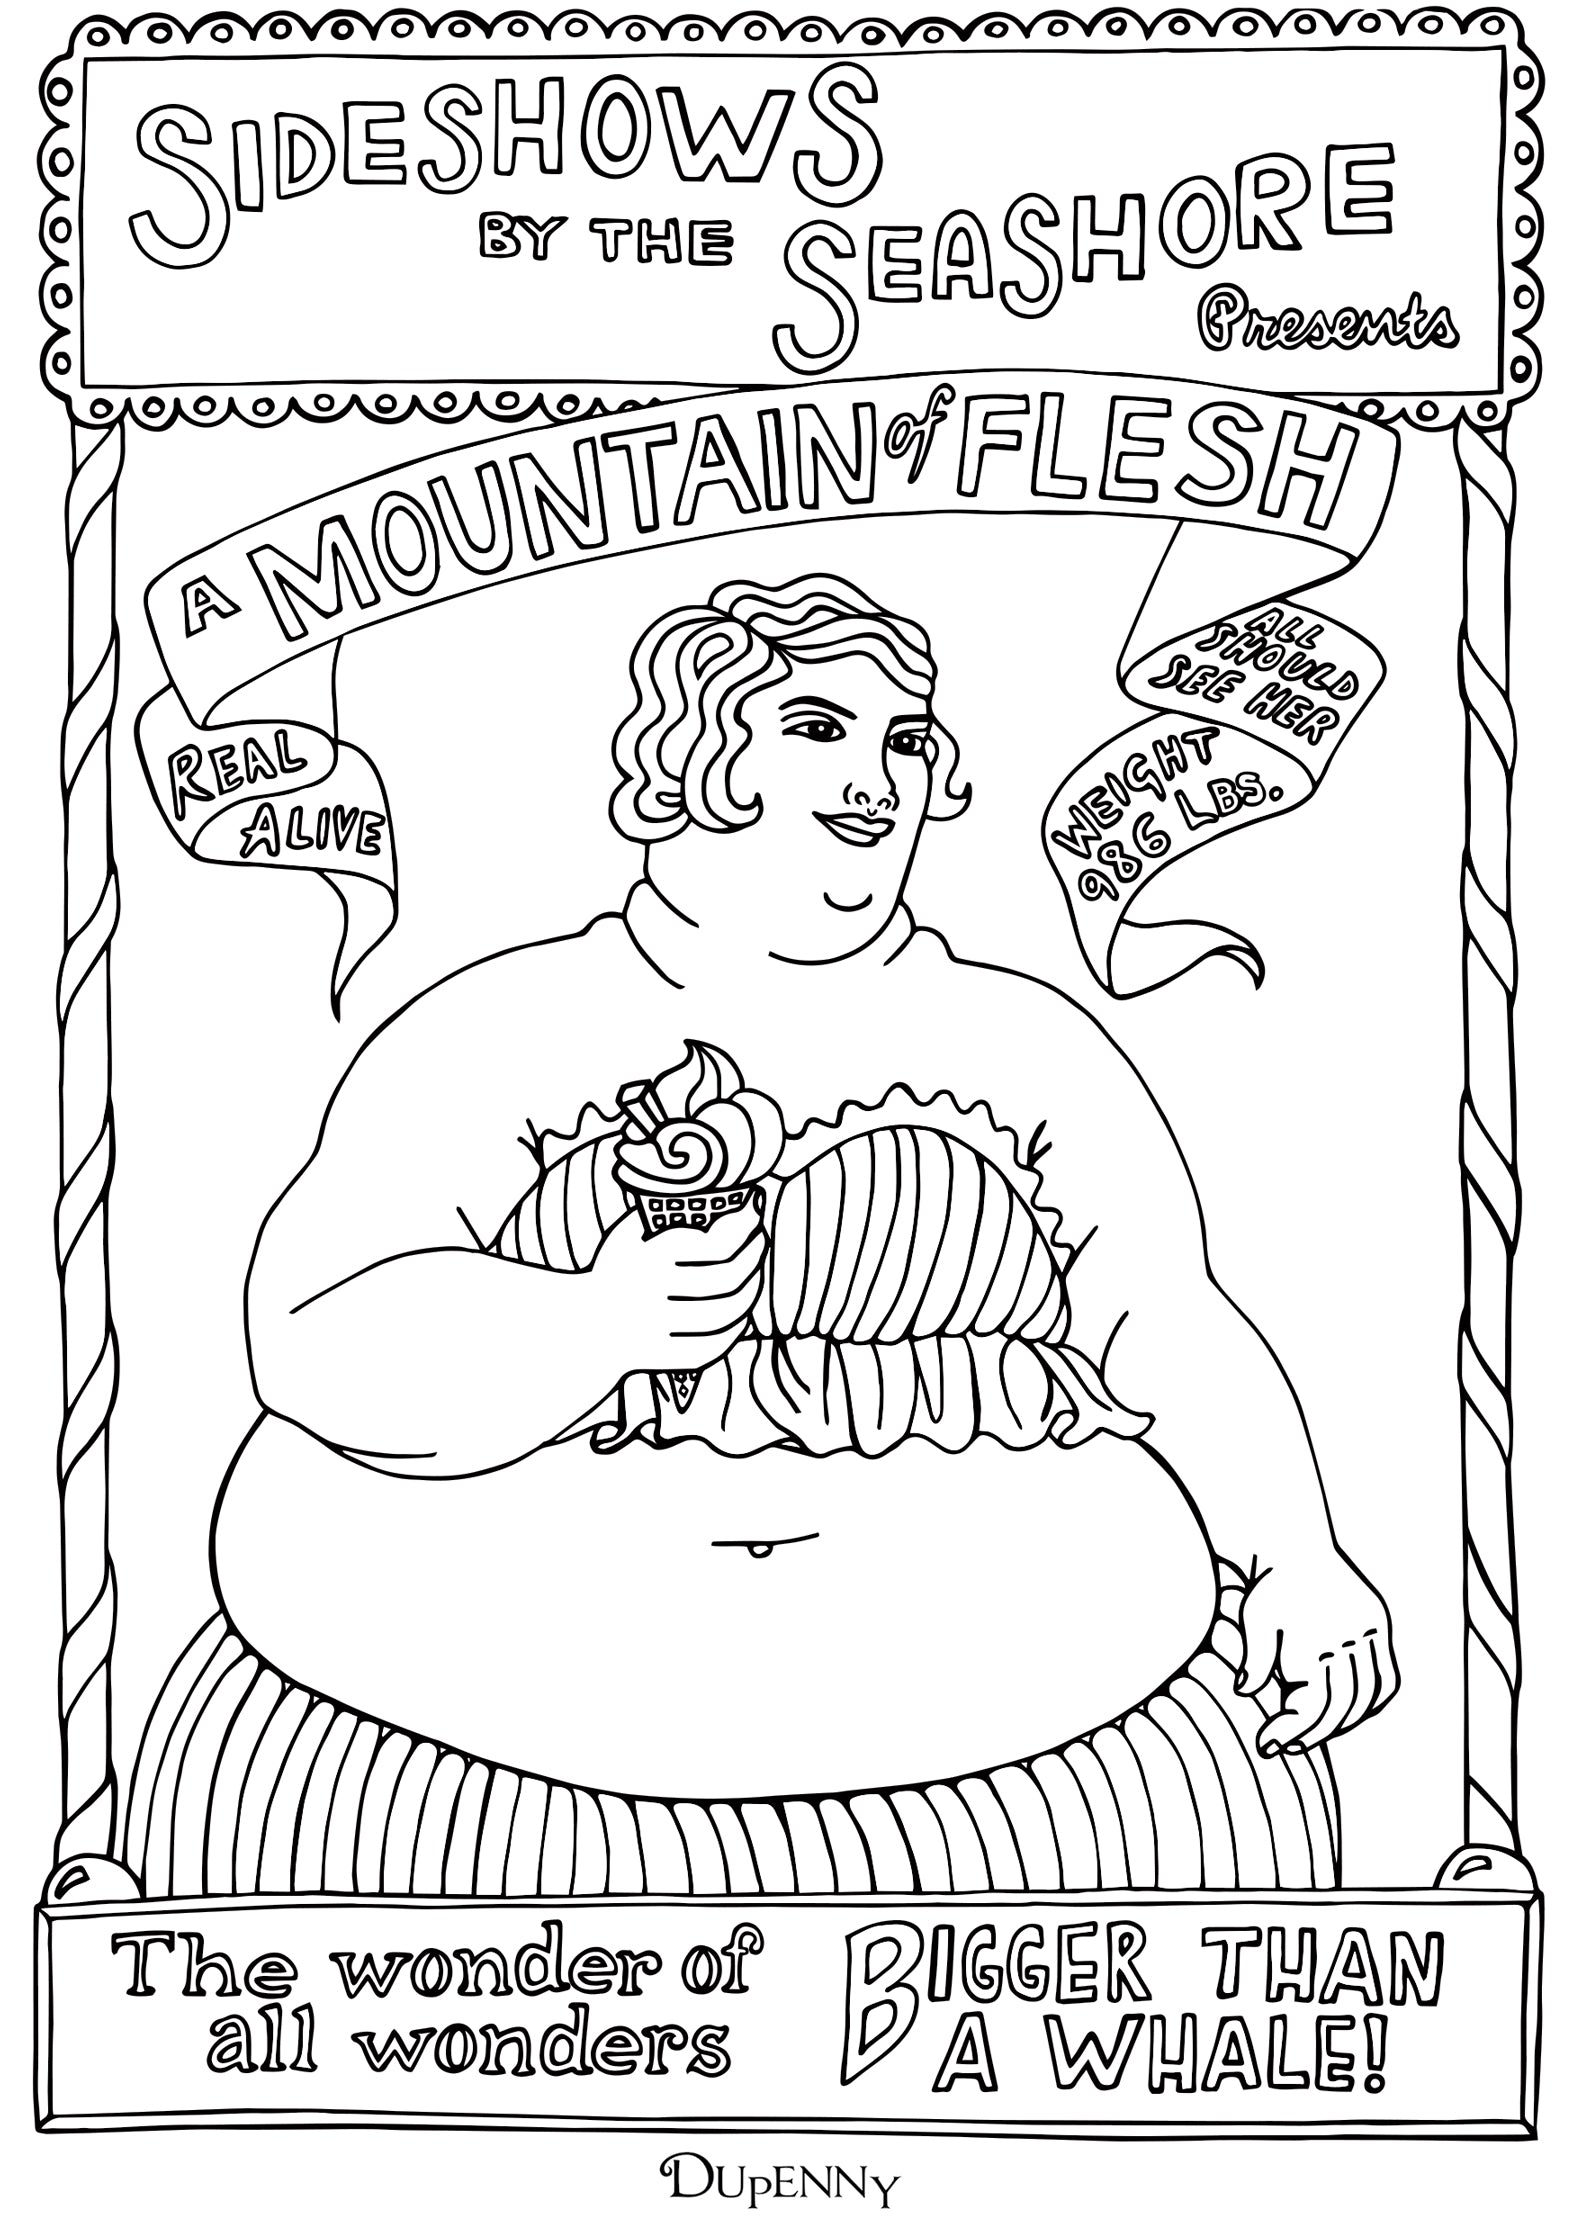 Dupenny A4 Coney Island 'Mountain of Flesh' Colouring Poster FREE